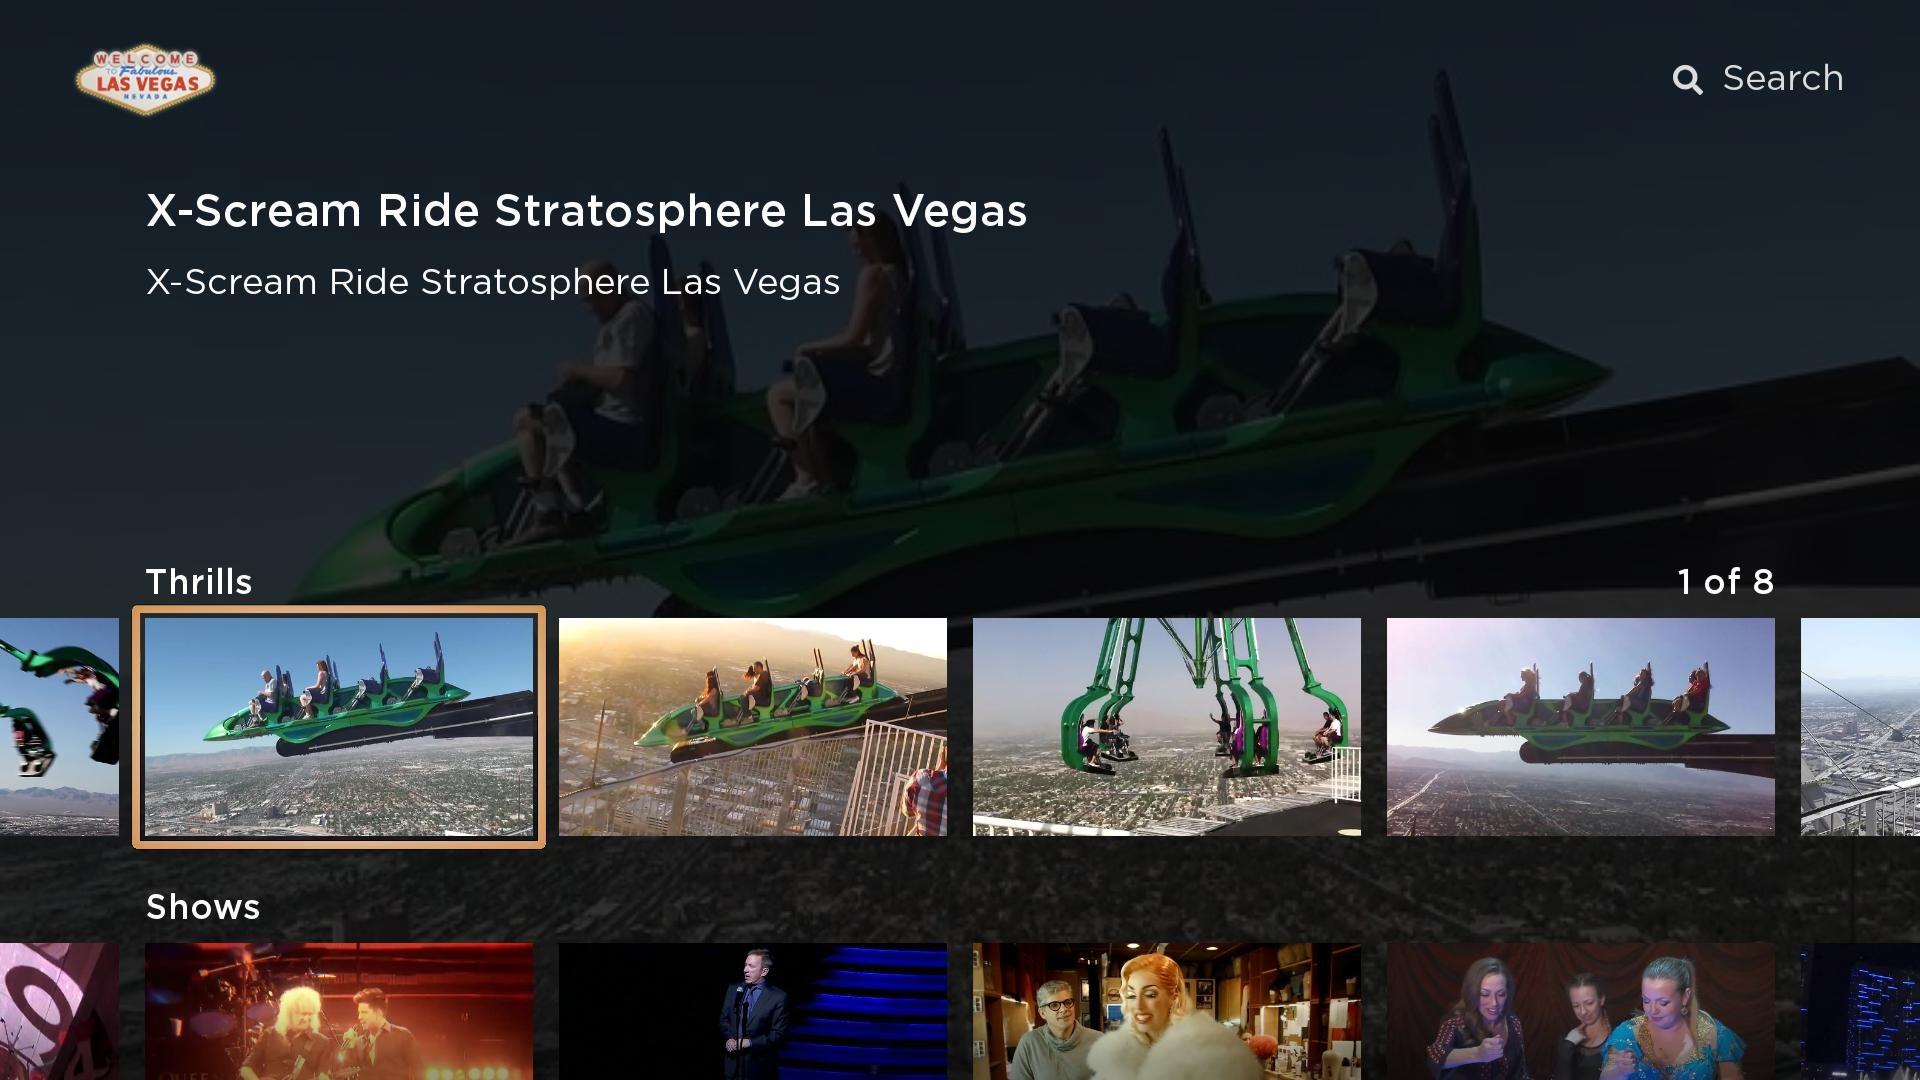 The Las Vegas Channel Screenshot 001